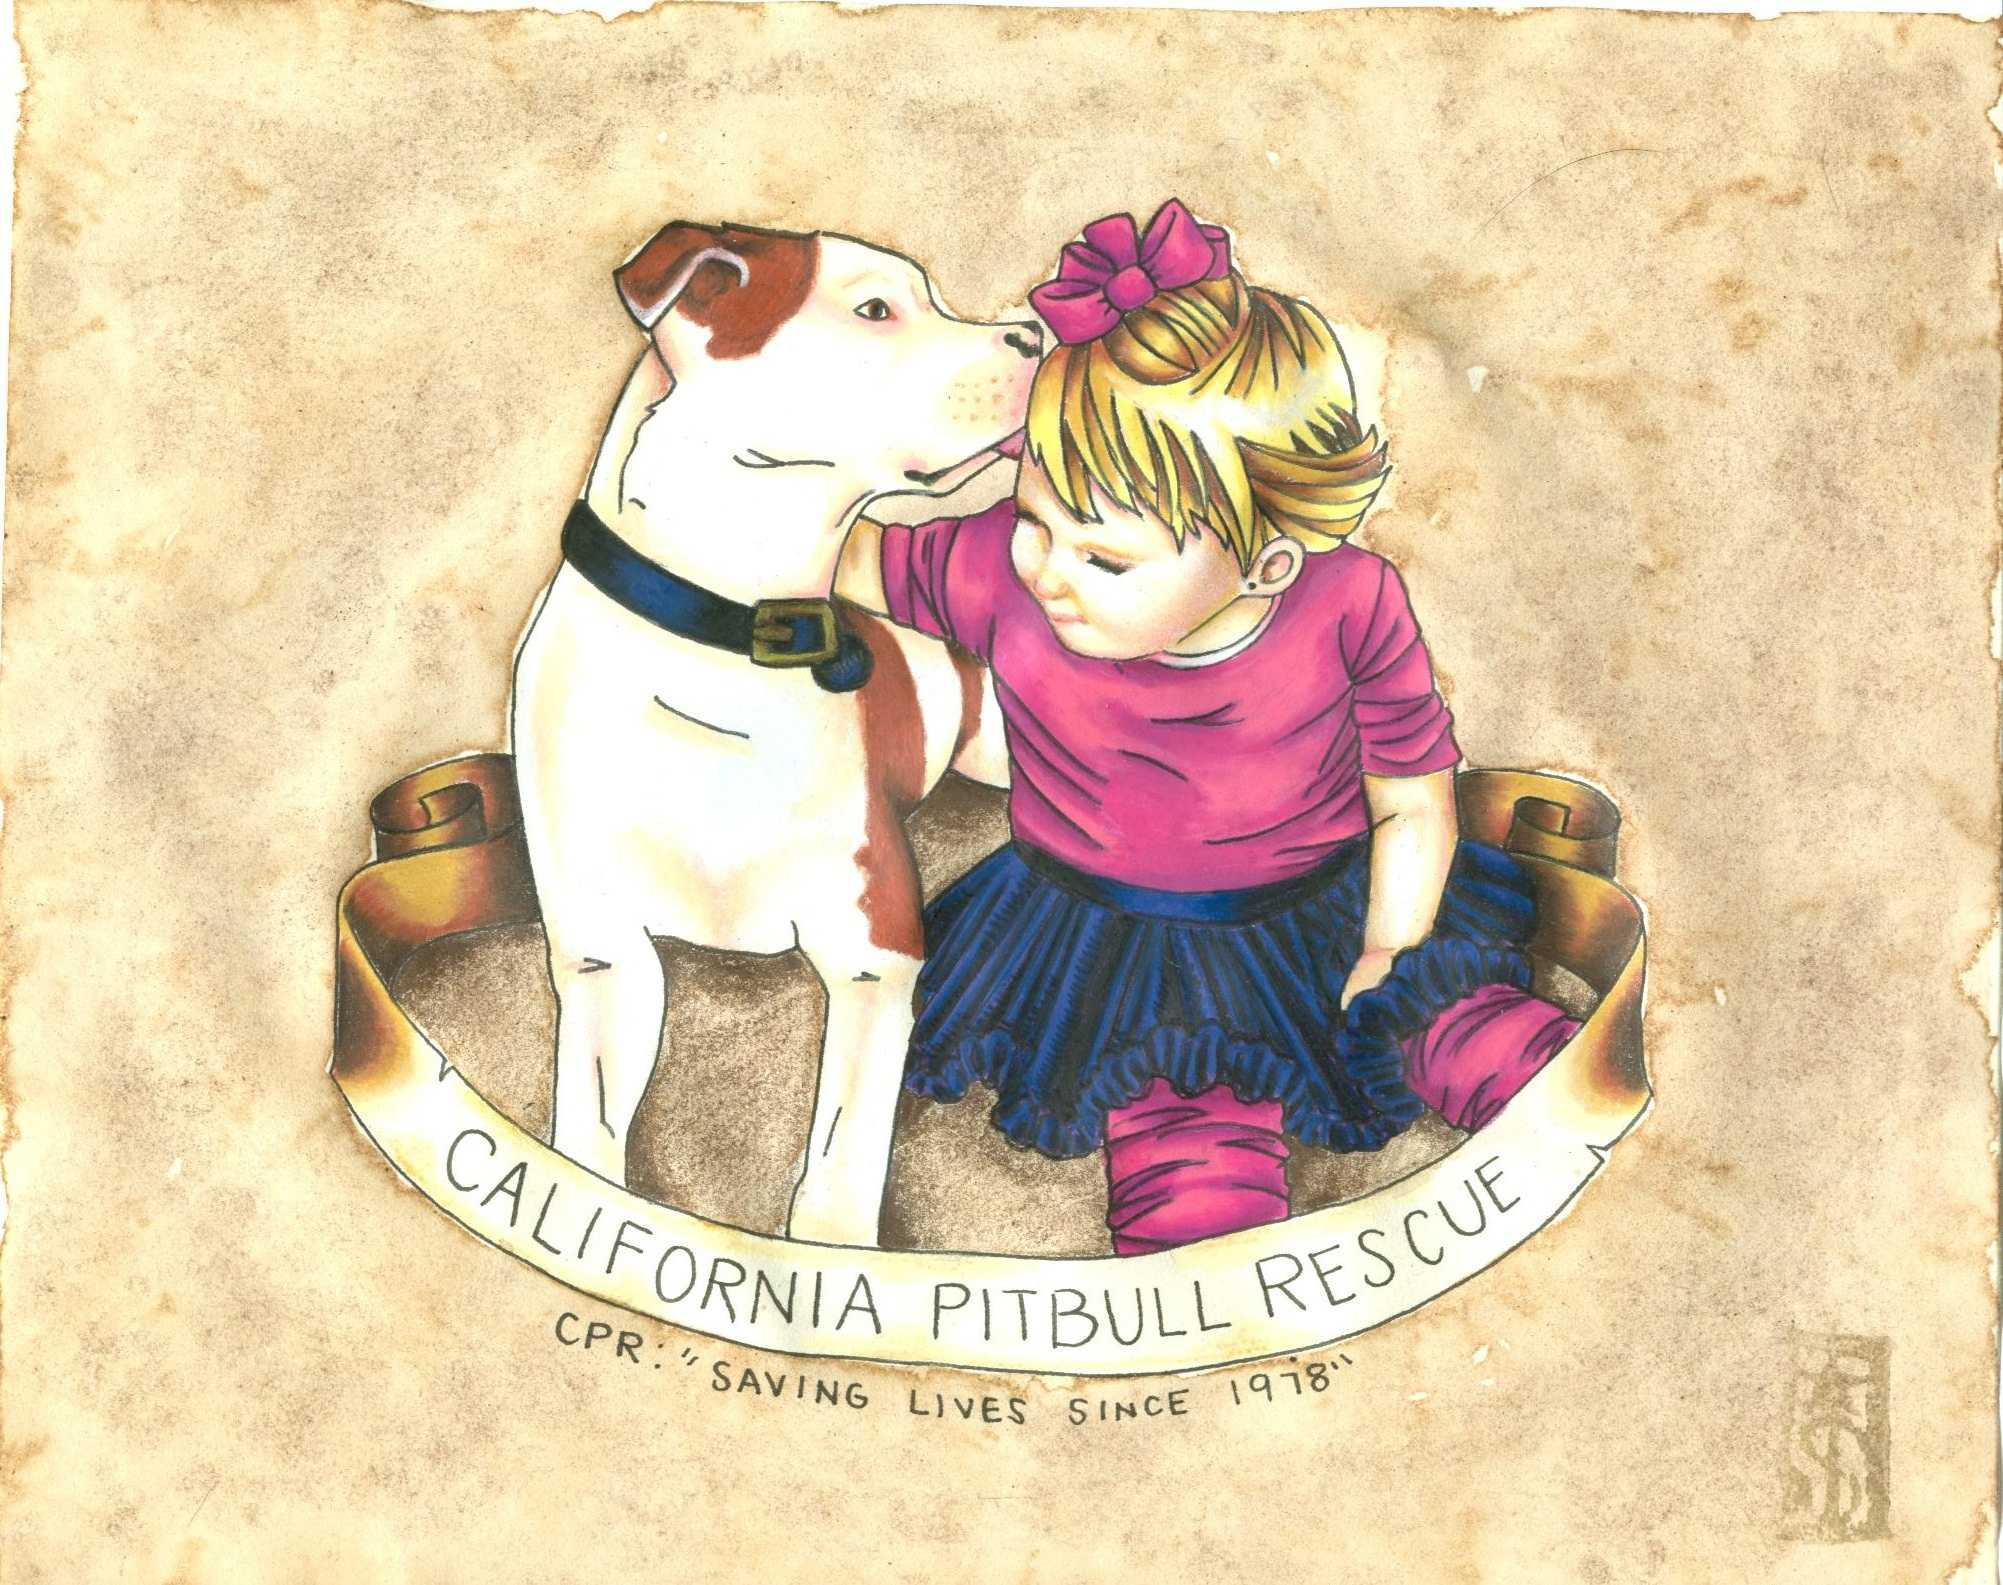 California Pit Bull Rescue